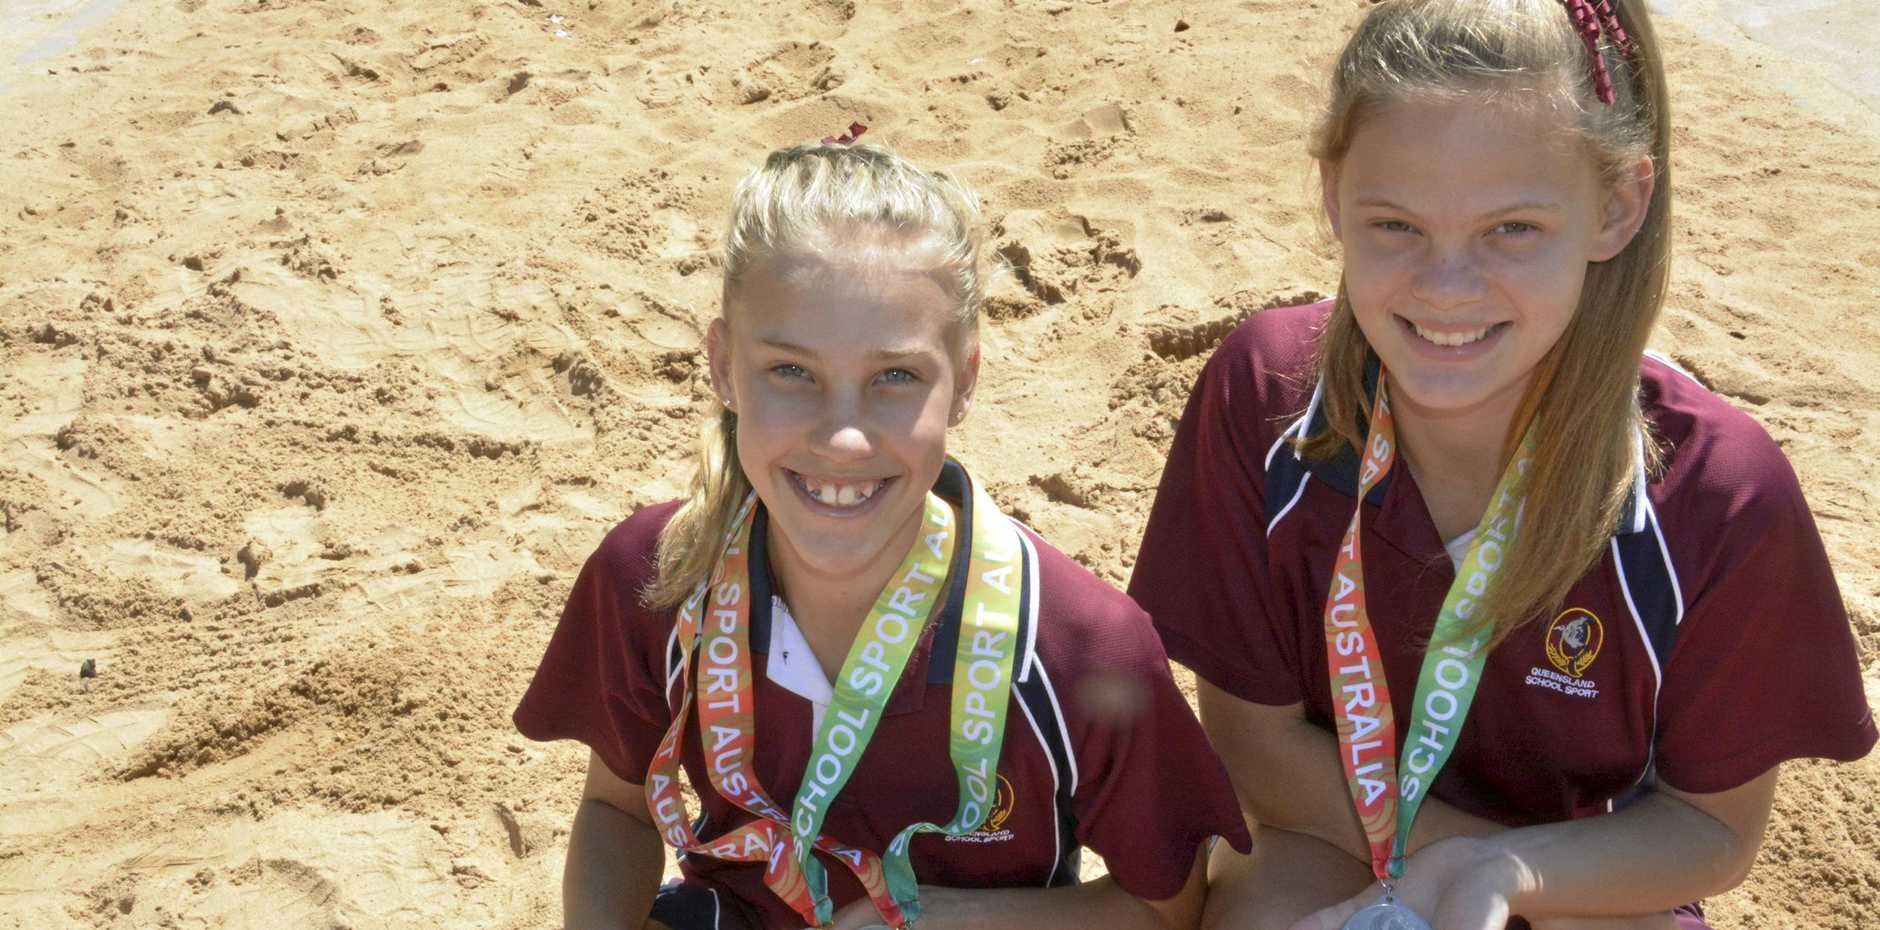 The Glennie School students Ruby Leicht (left) and Anna Park talk about their 1-2 long jump finish at the 10-12 School Sport Australia Track & Field Championships in Darwin. Ruby finished first ahead of friend Anna.